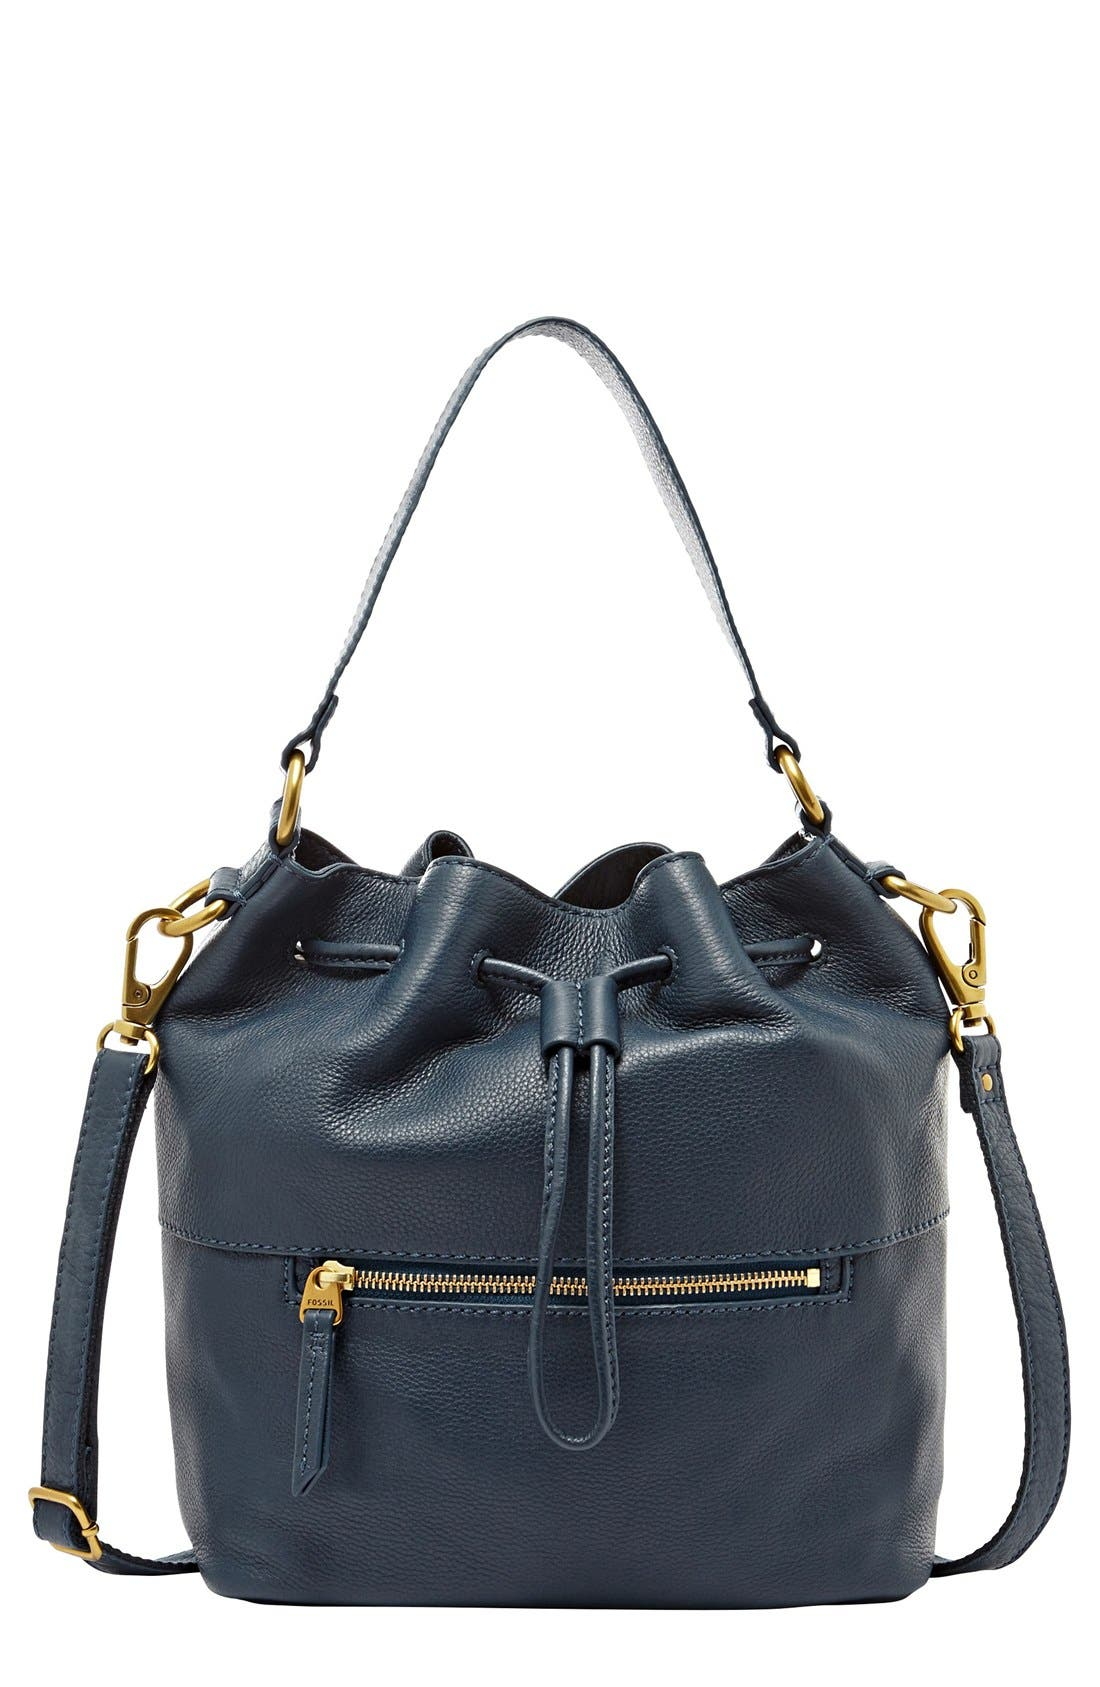 Alternate Image 1 Selected - Fossil 'Vickery' Drawstring Tote